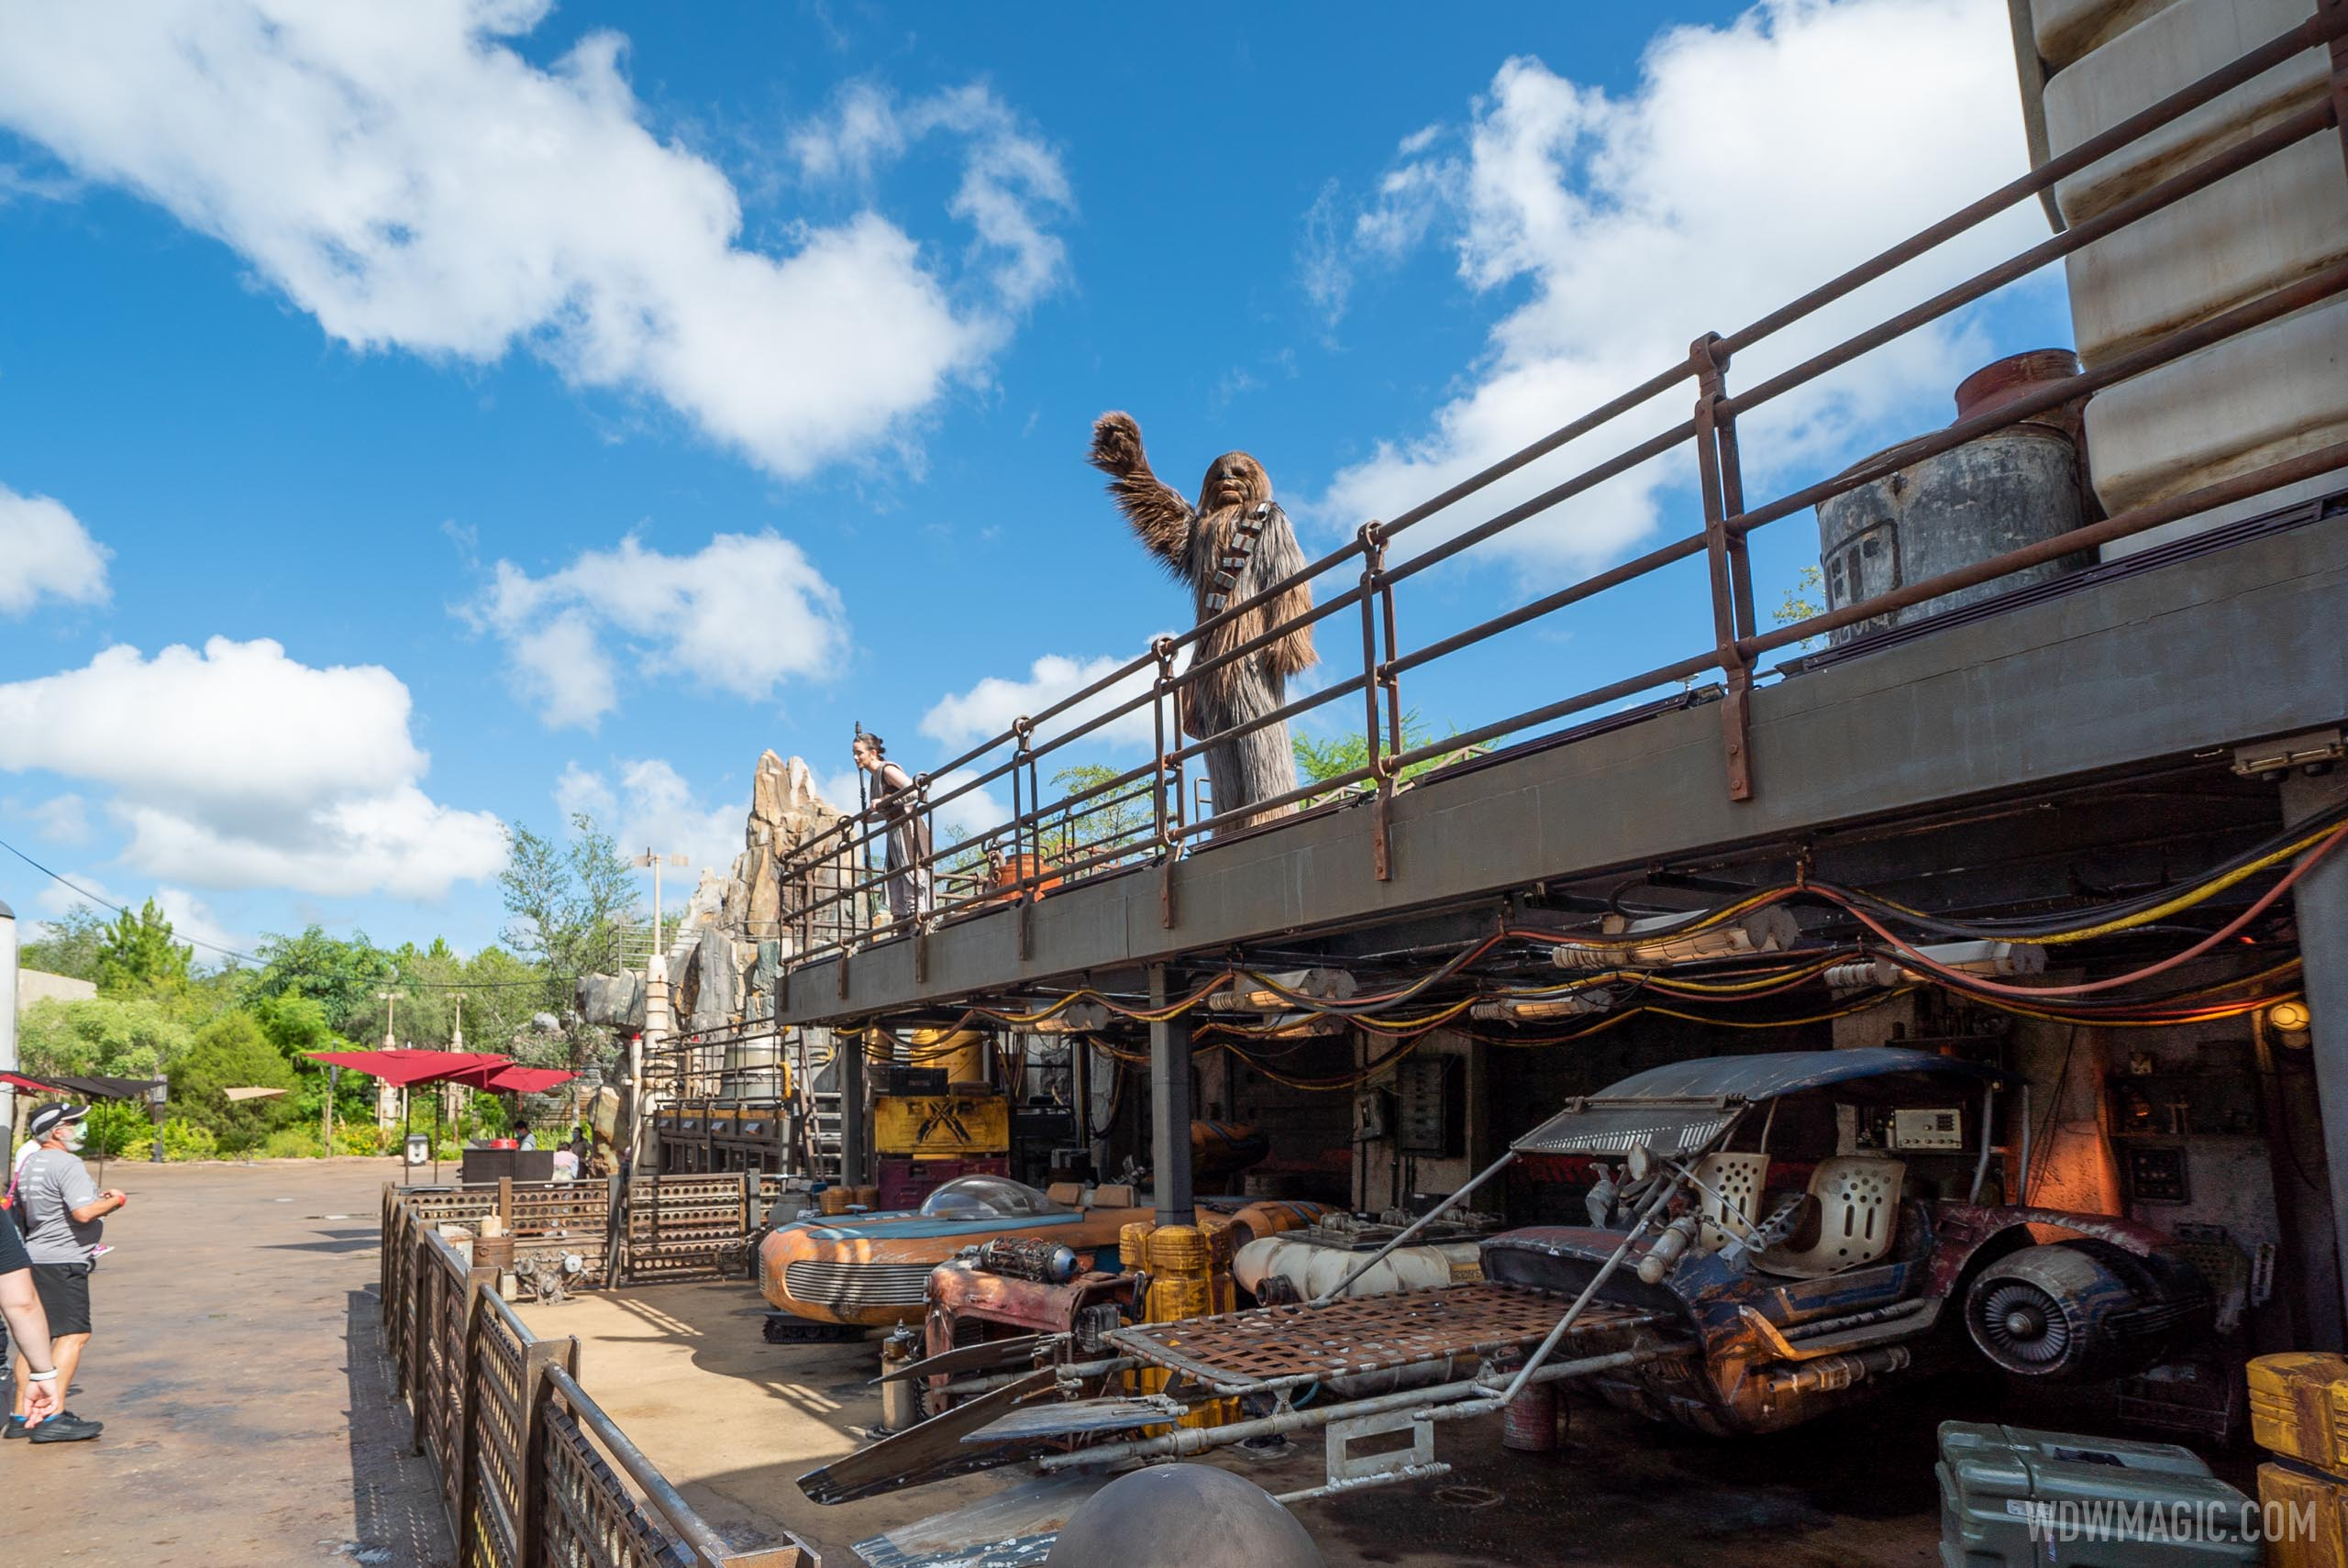 Chewbacca and Rey appear at a distance in Galaxy's Edge